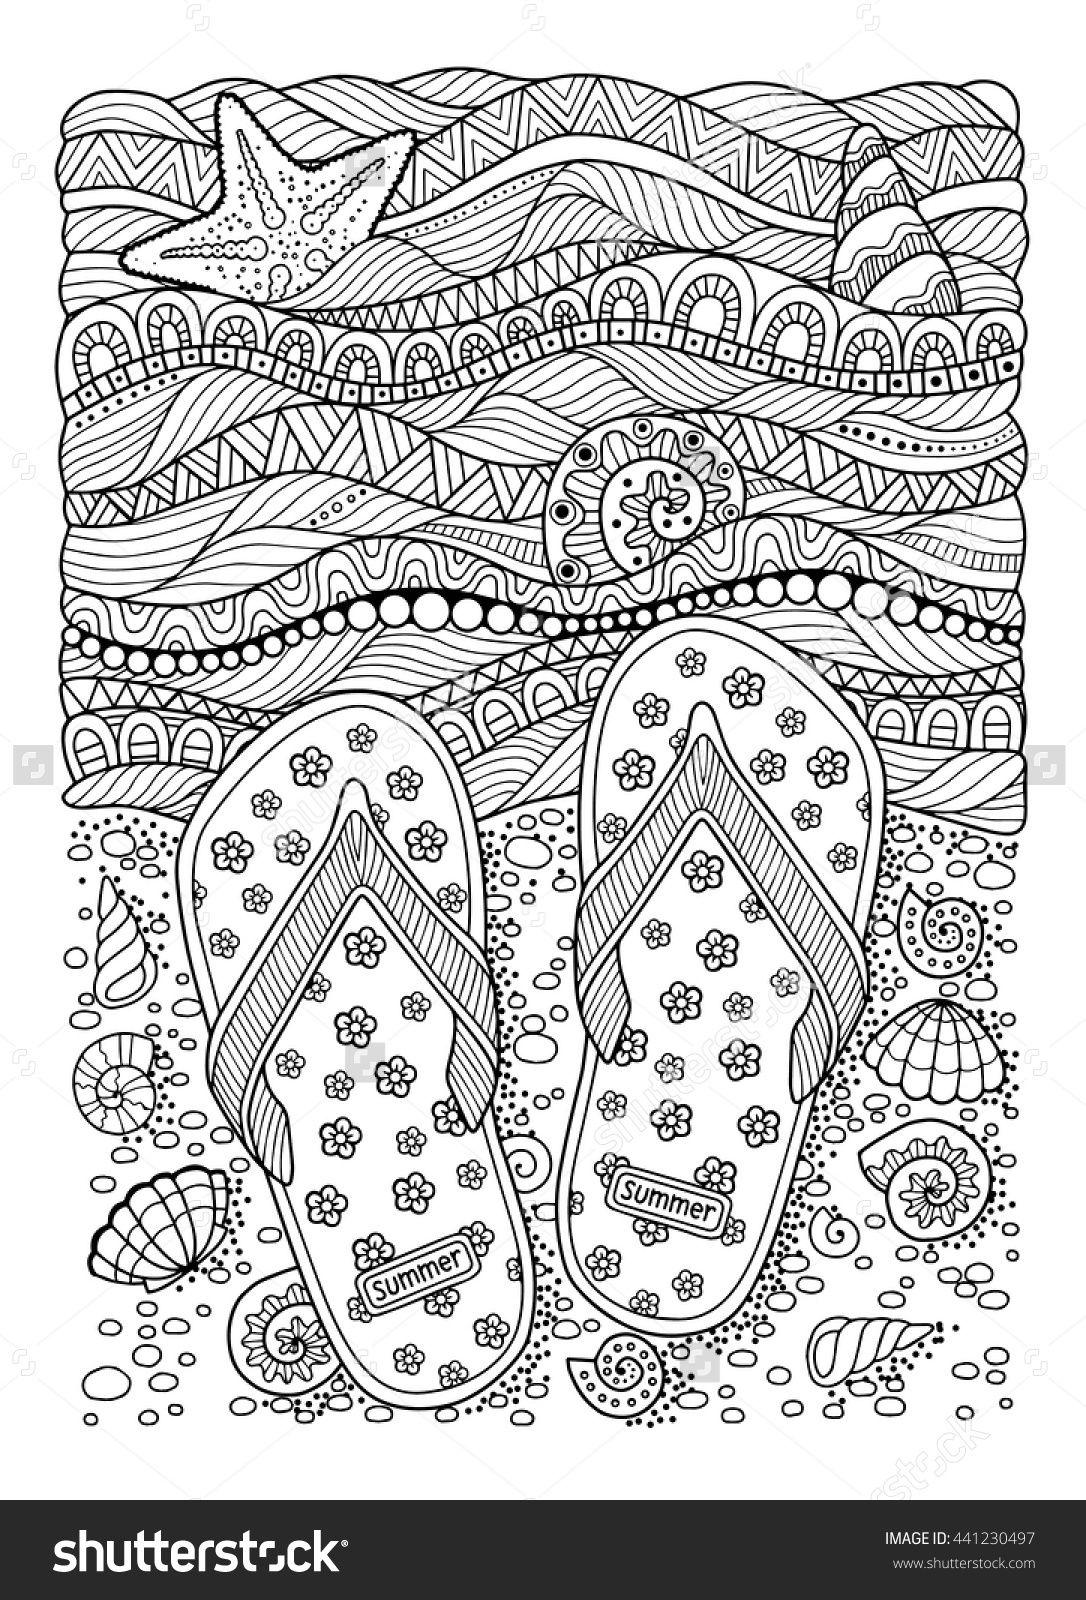 Coloring Book For Adult Sea Beach Slippers Shells Flip Flops Shutterstock 441230497